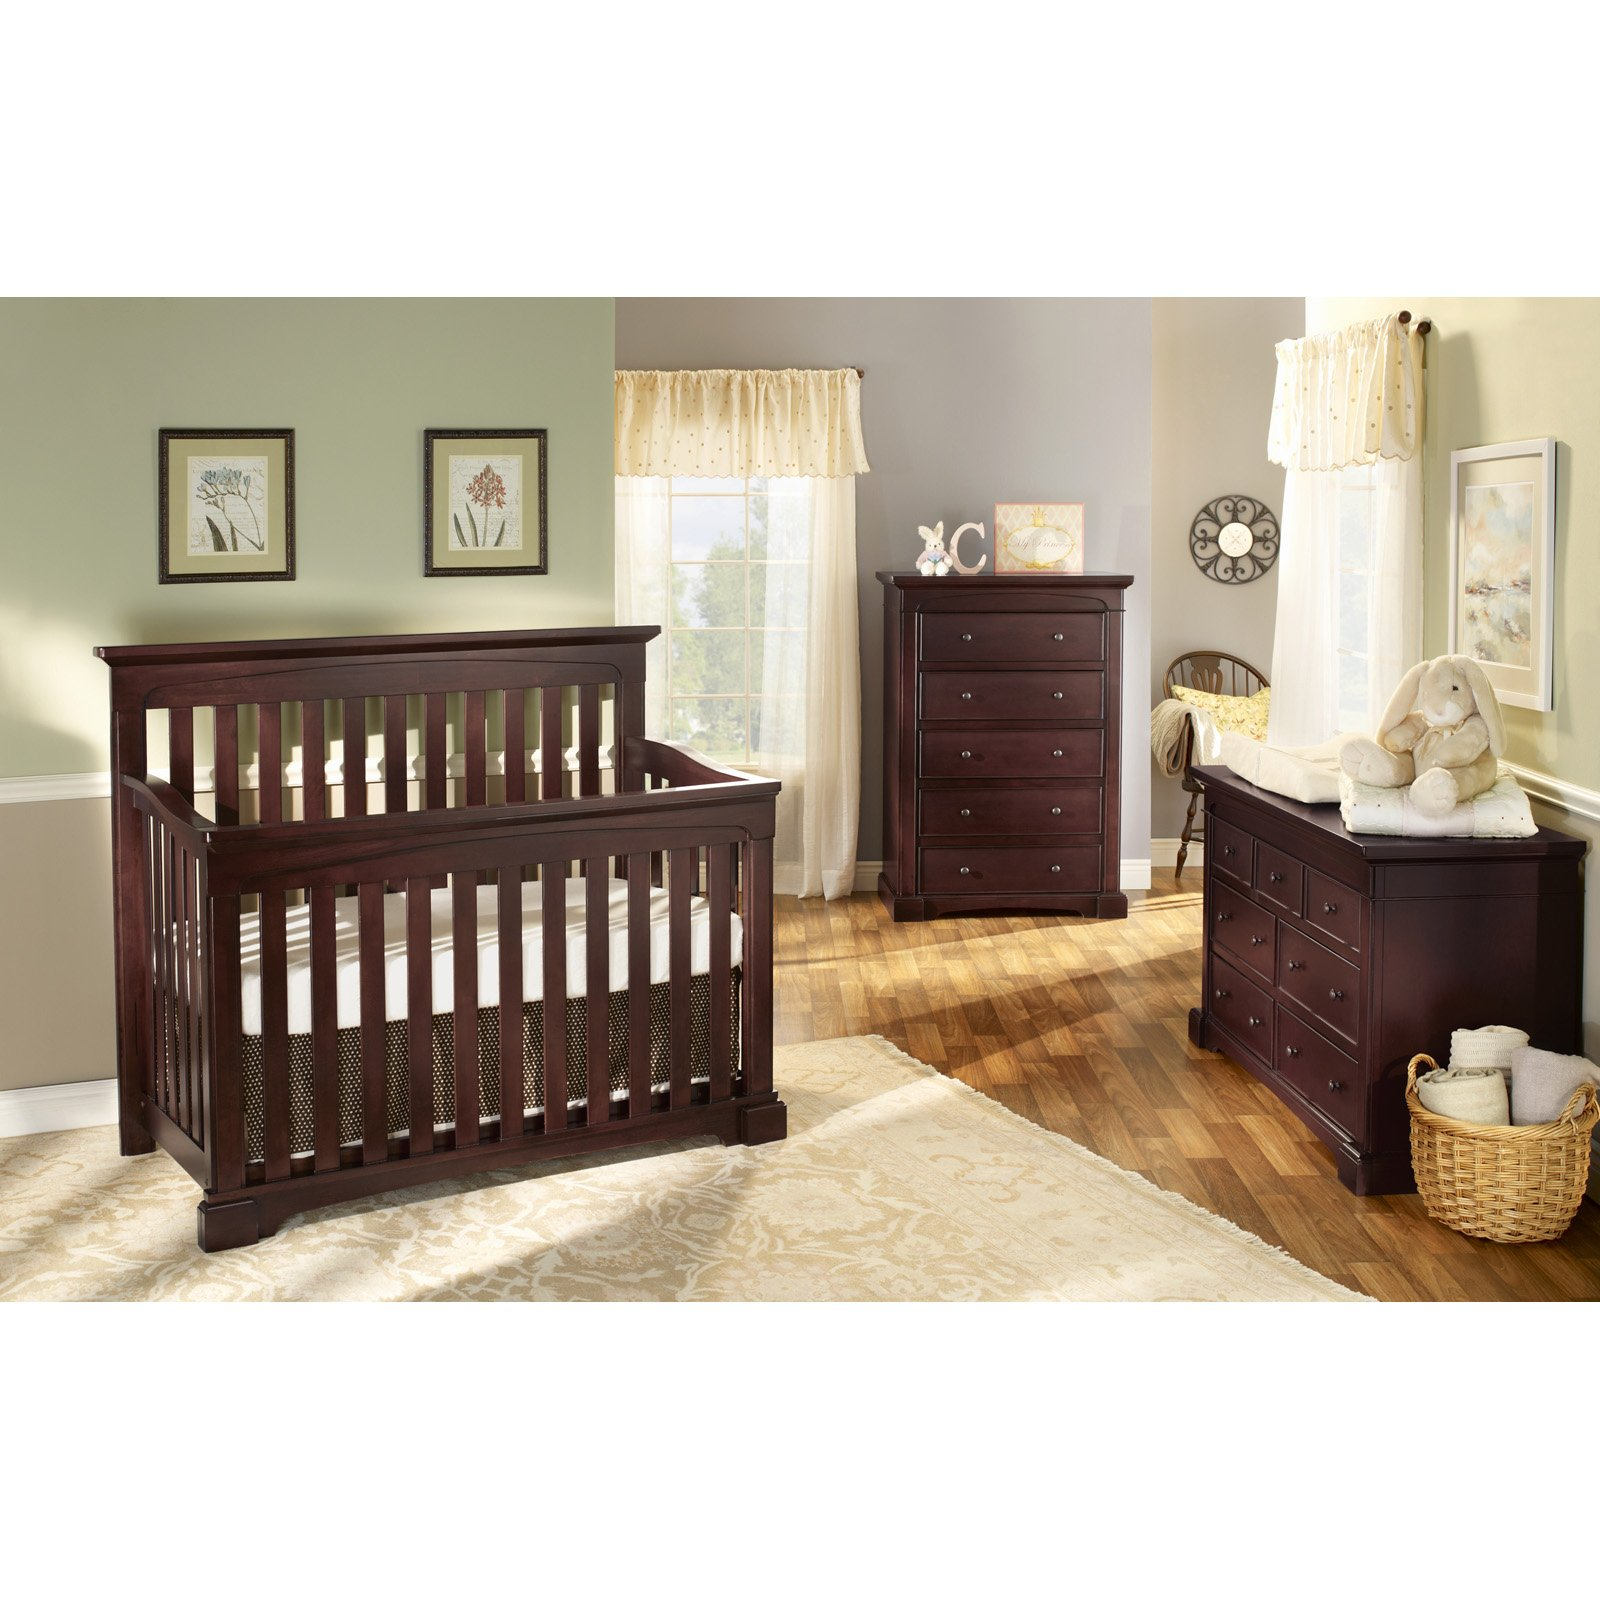 nursery furniture sets selection on logical reasons IXUBFUU